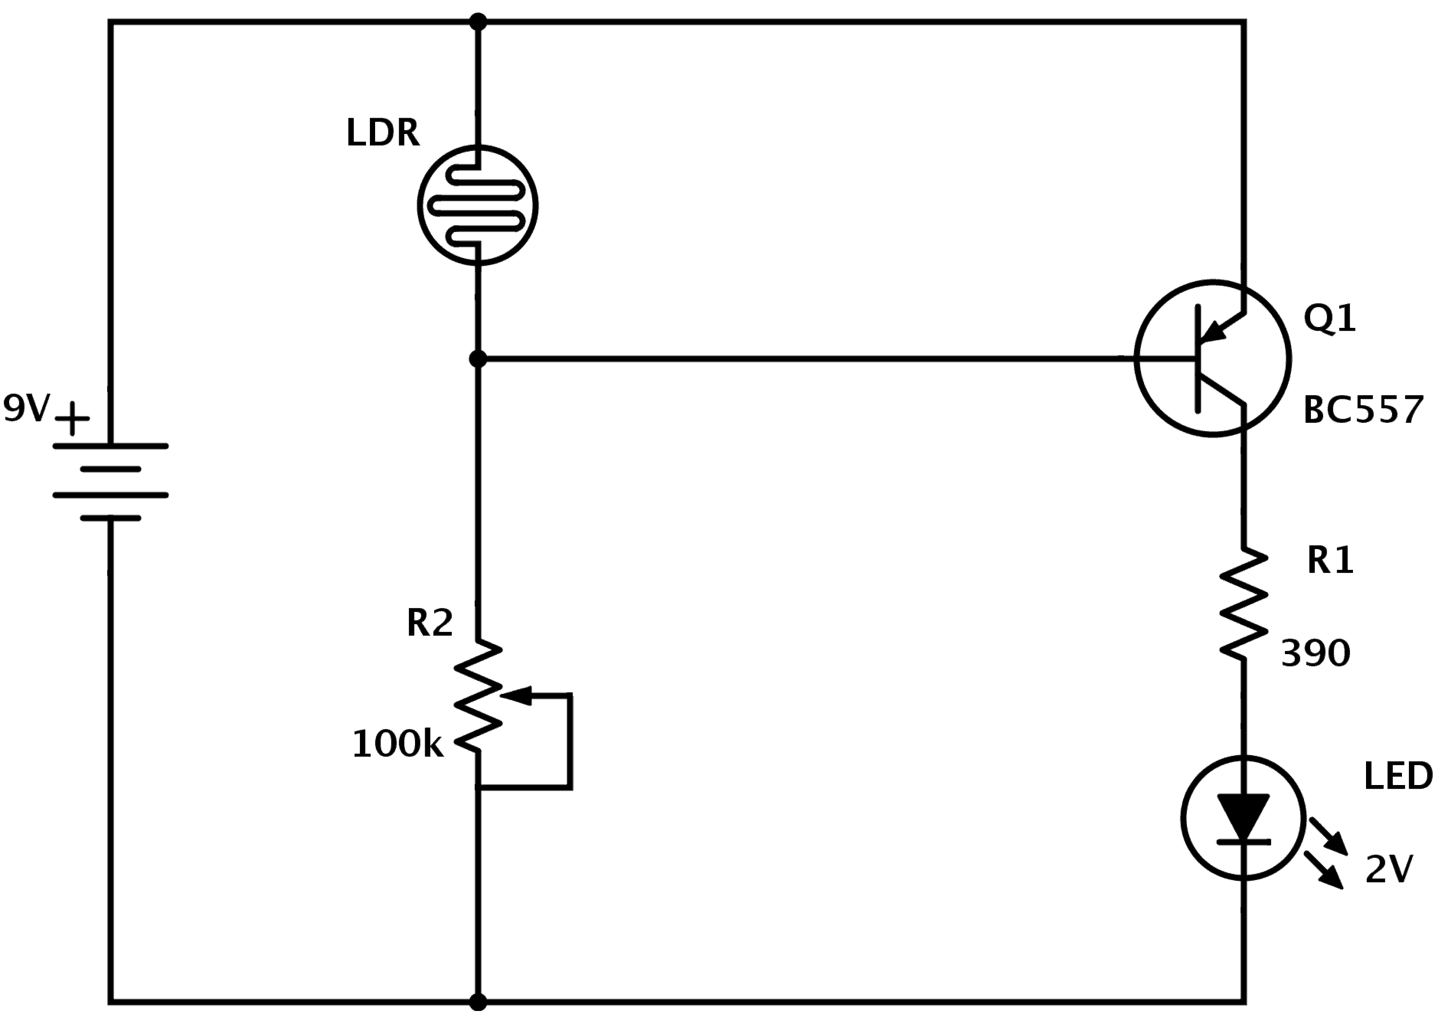 Ldr Circuit Diagram Build Electronic Circuits To Breadboard With Pnp Transistor Dark Detector